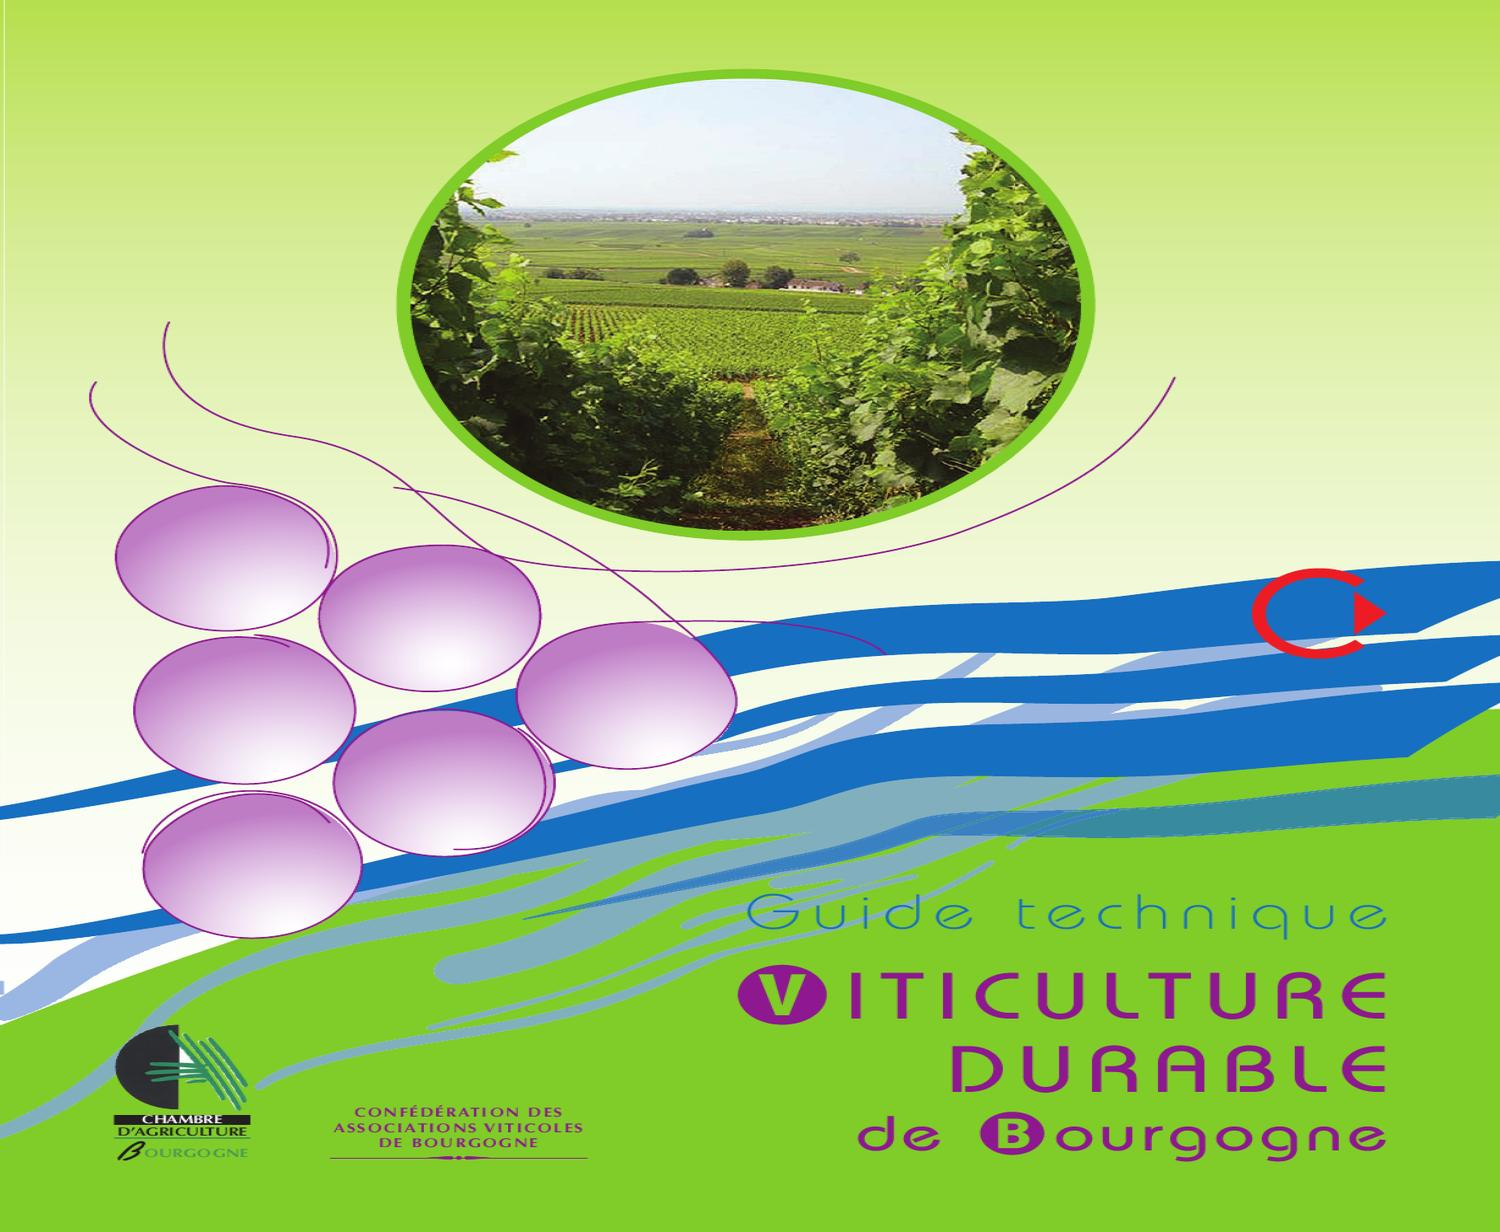 Guide technique viticulture durable de bourgogne by - Chambre d agriculture 43 ...